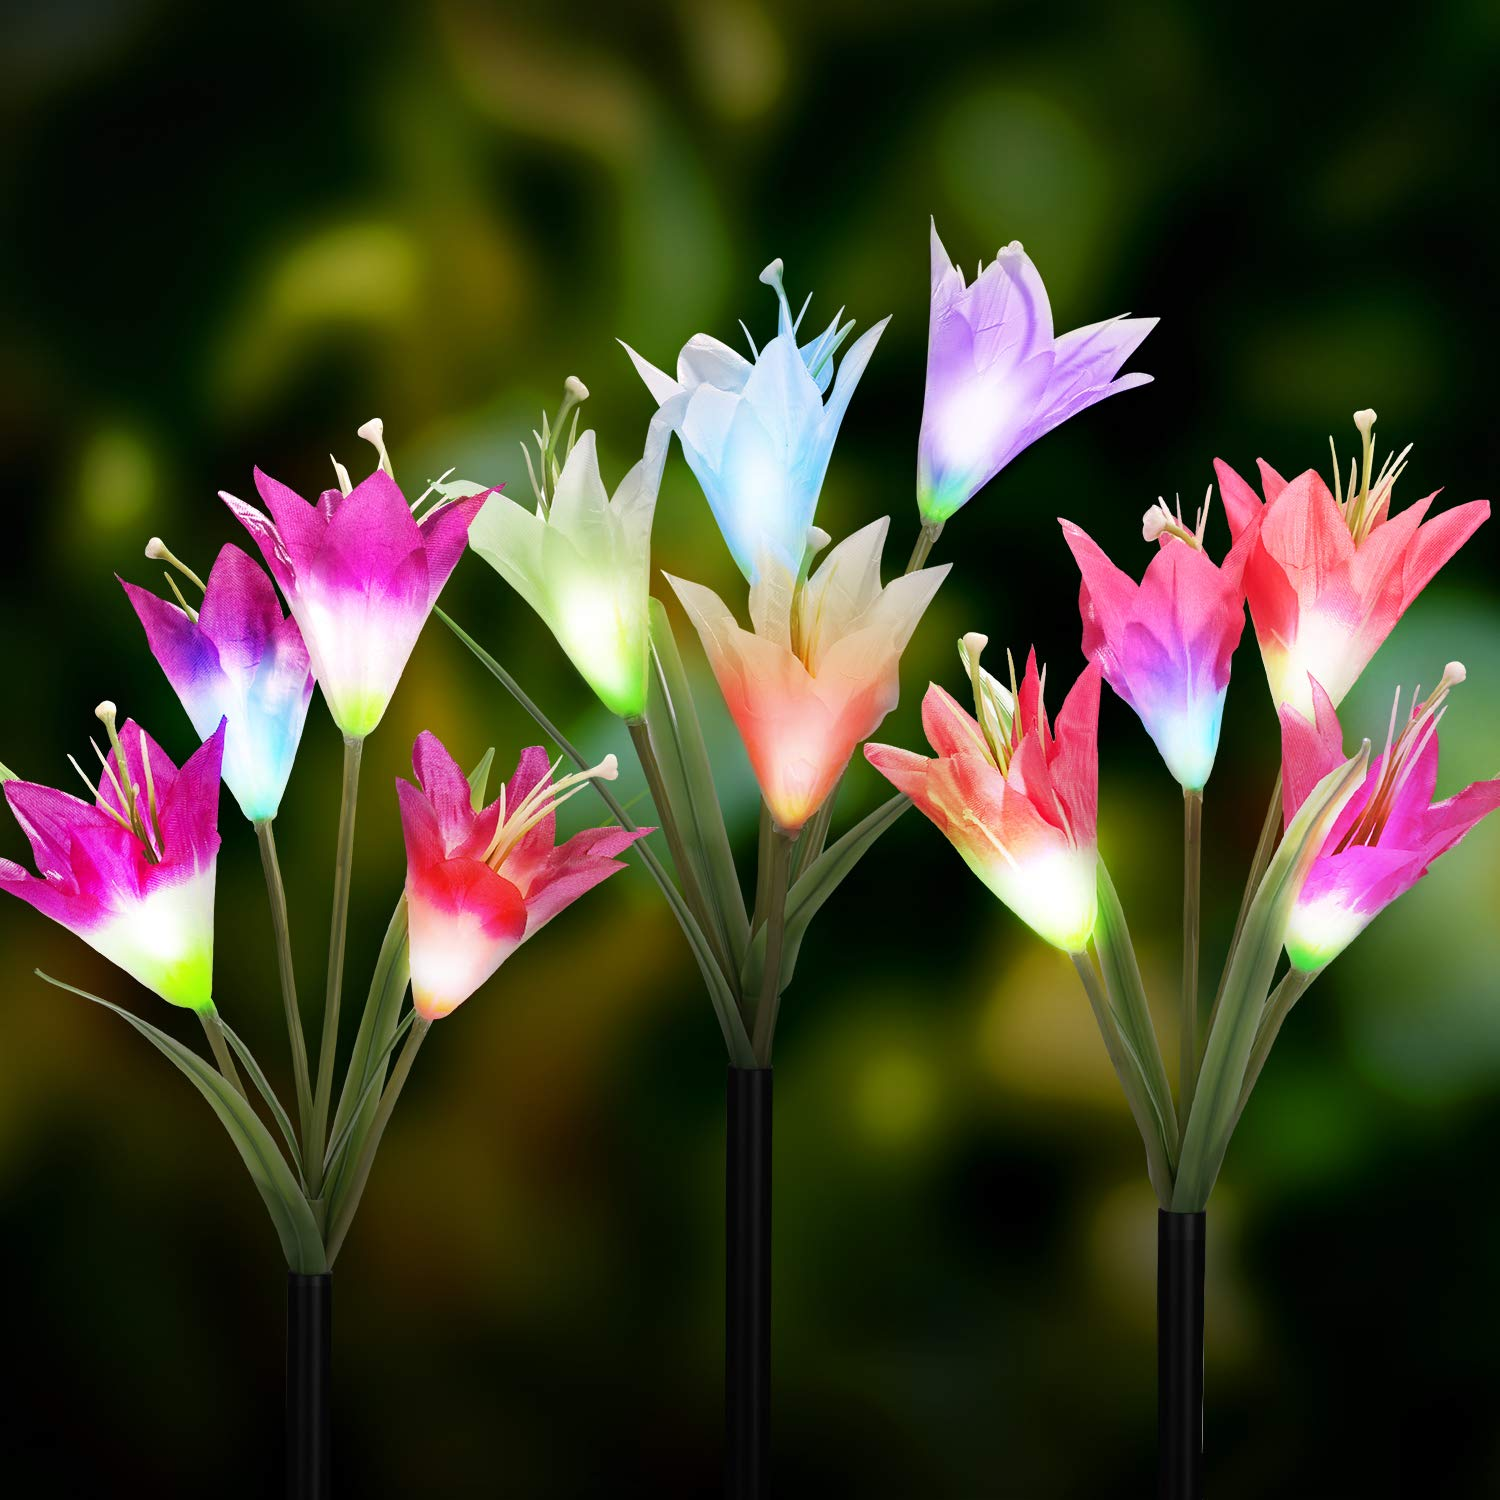 Solar Garden Lights Outdoor [3 Pack] - WdtPro Solar Powered Flower Lights with 12 Lily Flower - Multi-Color Changing LED Solar Landscape Decorative Lighting for Garden, Patio(Purple, White & Pink)